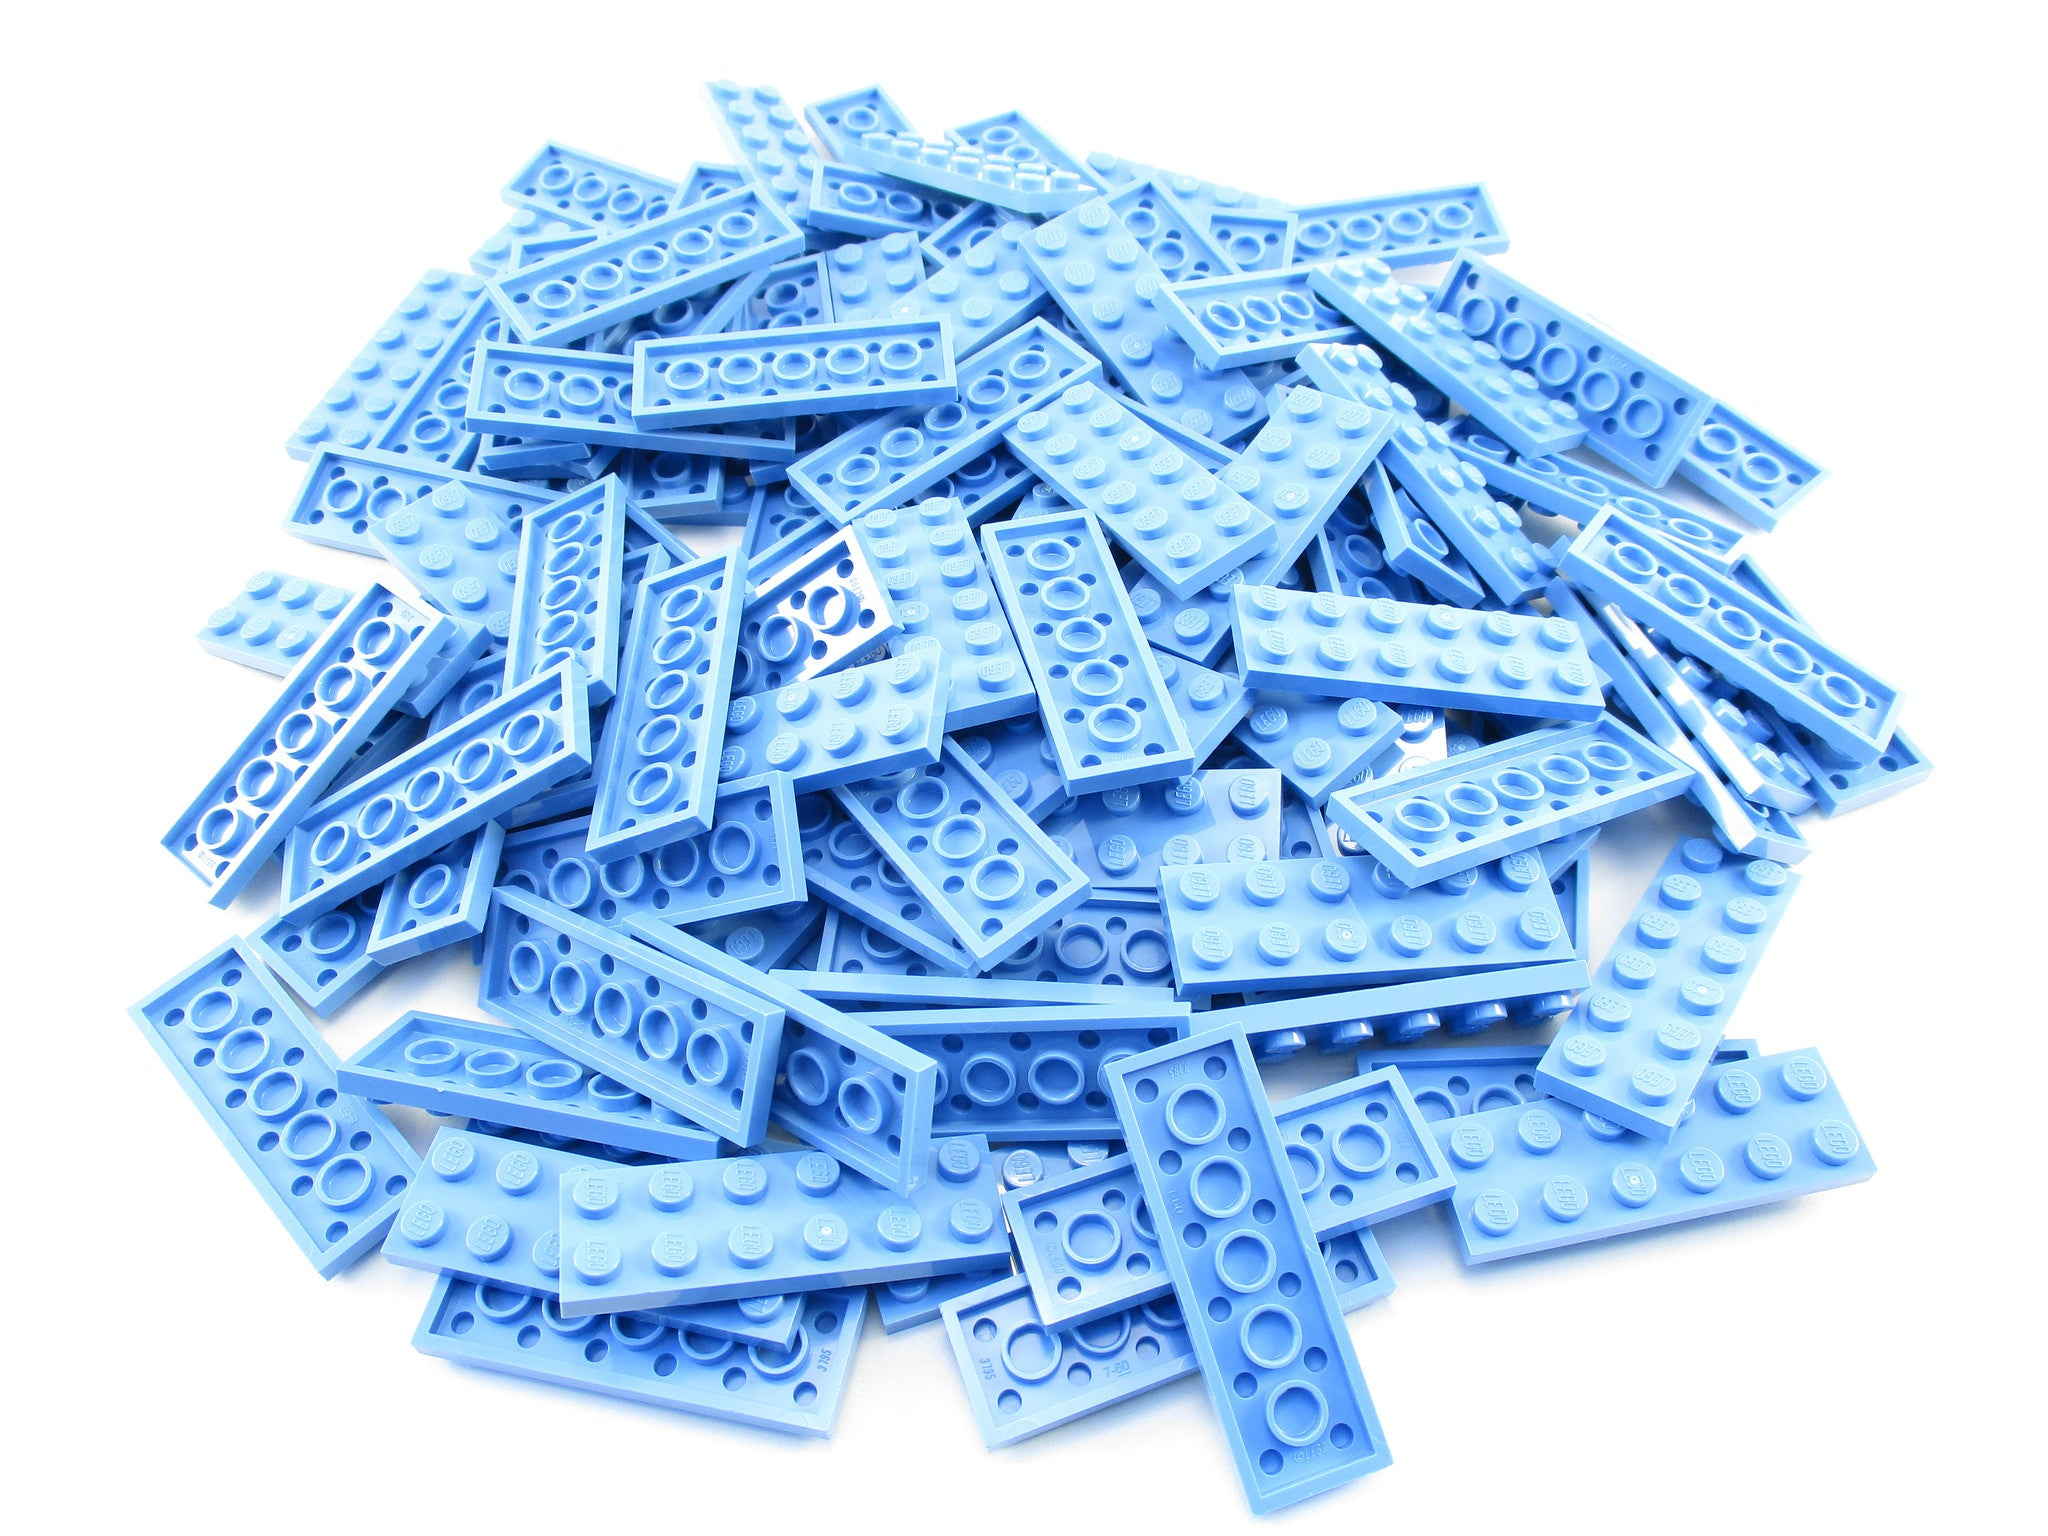 LEGO Medium Blue Plate 2x6 Lot of 100 Parts Pieces 3795